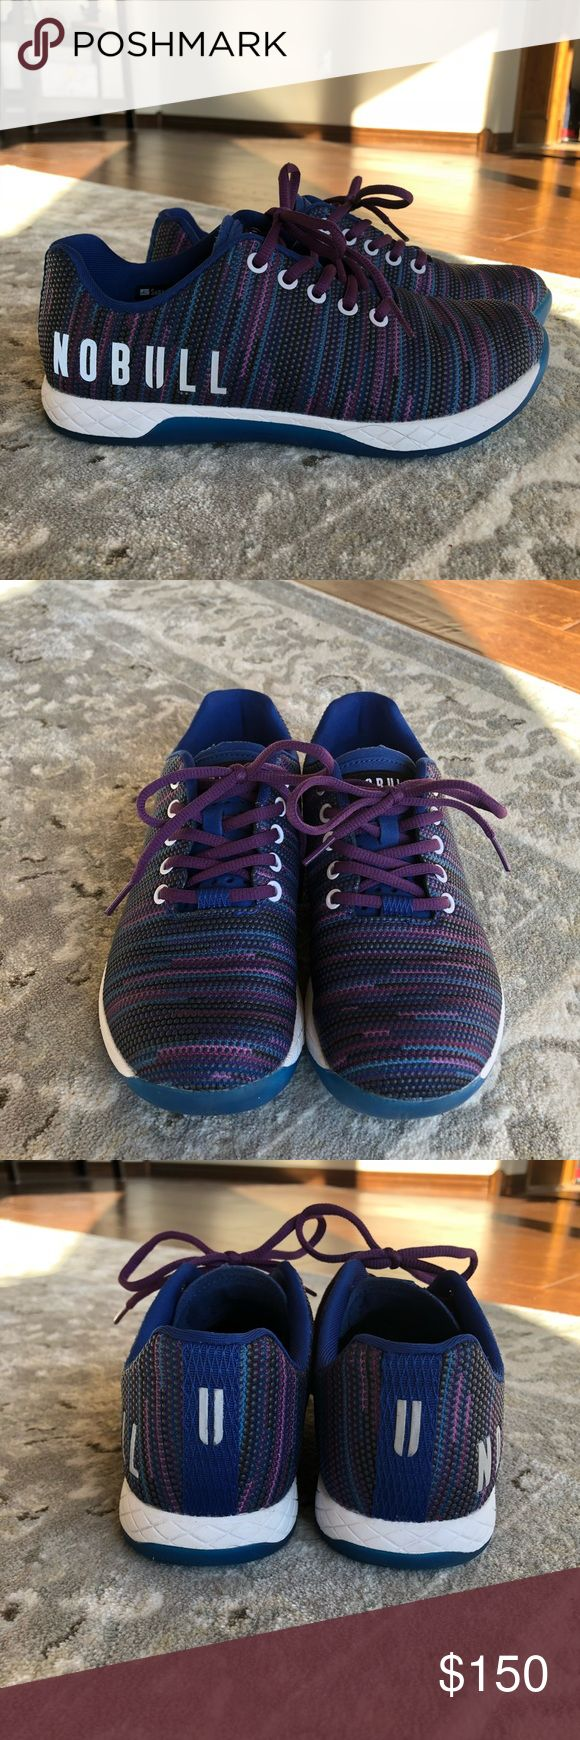 Nobull purple trainers, women's 8! These Nobull trainers are in almost new condition, worn less than 5 times. Women's size 8! No signs of wear or tear! Fit true to size. Nobull Shoes Athletic Shoes